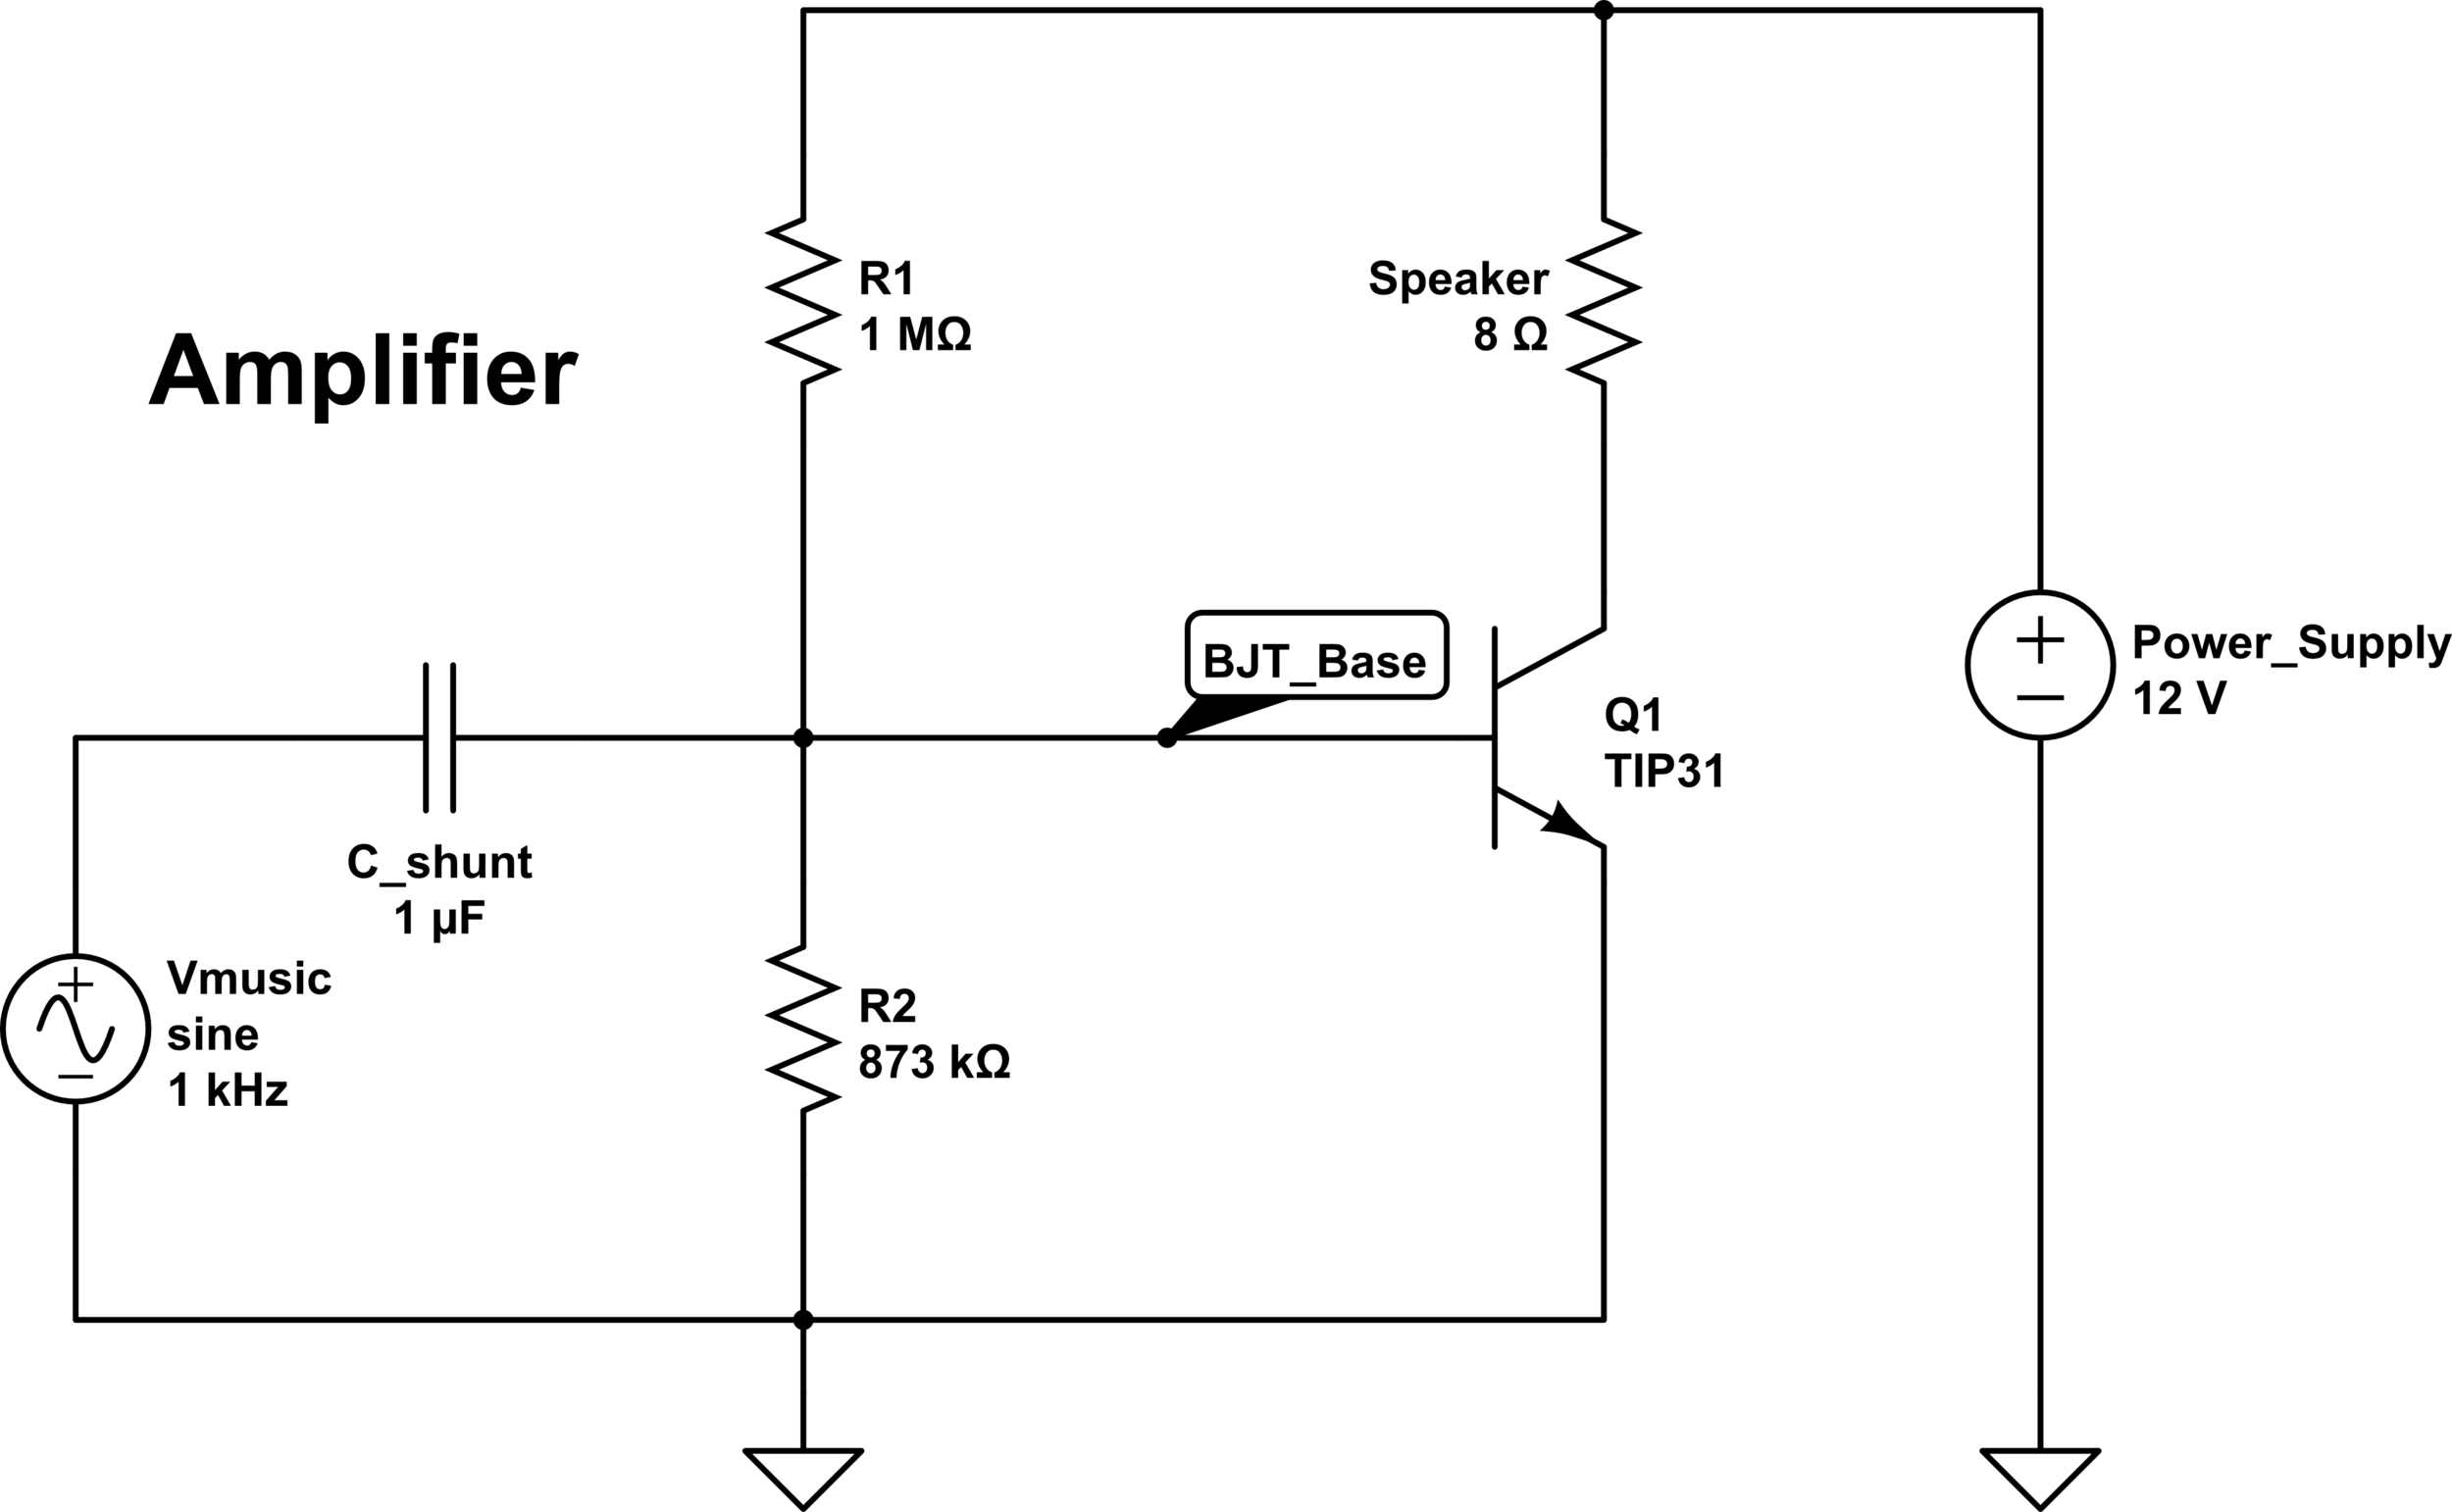 Input: Vmusic from the filter component. Output: Voltage across speaker (denoted with 8Ω resistor).